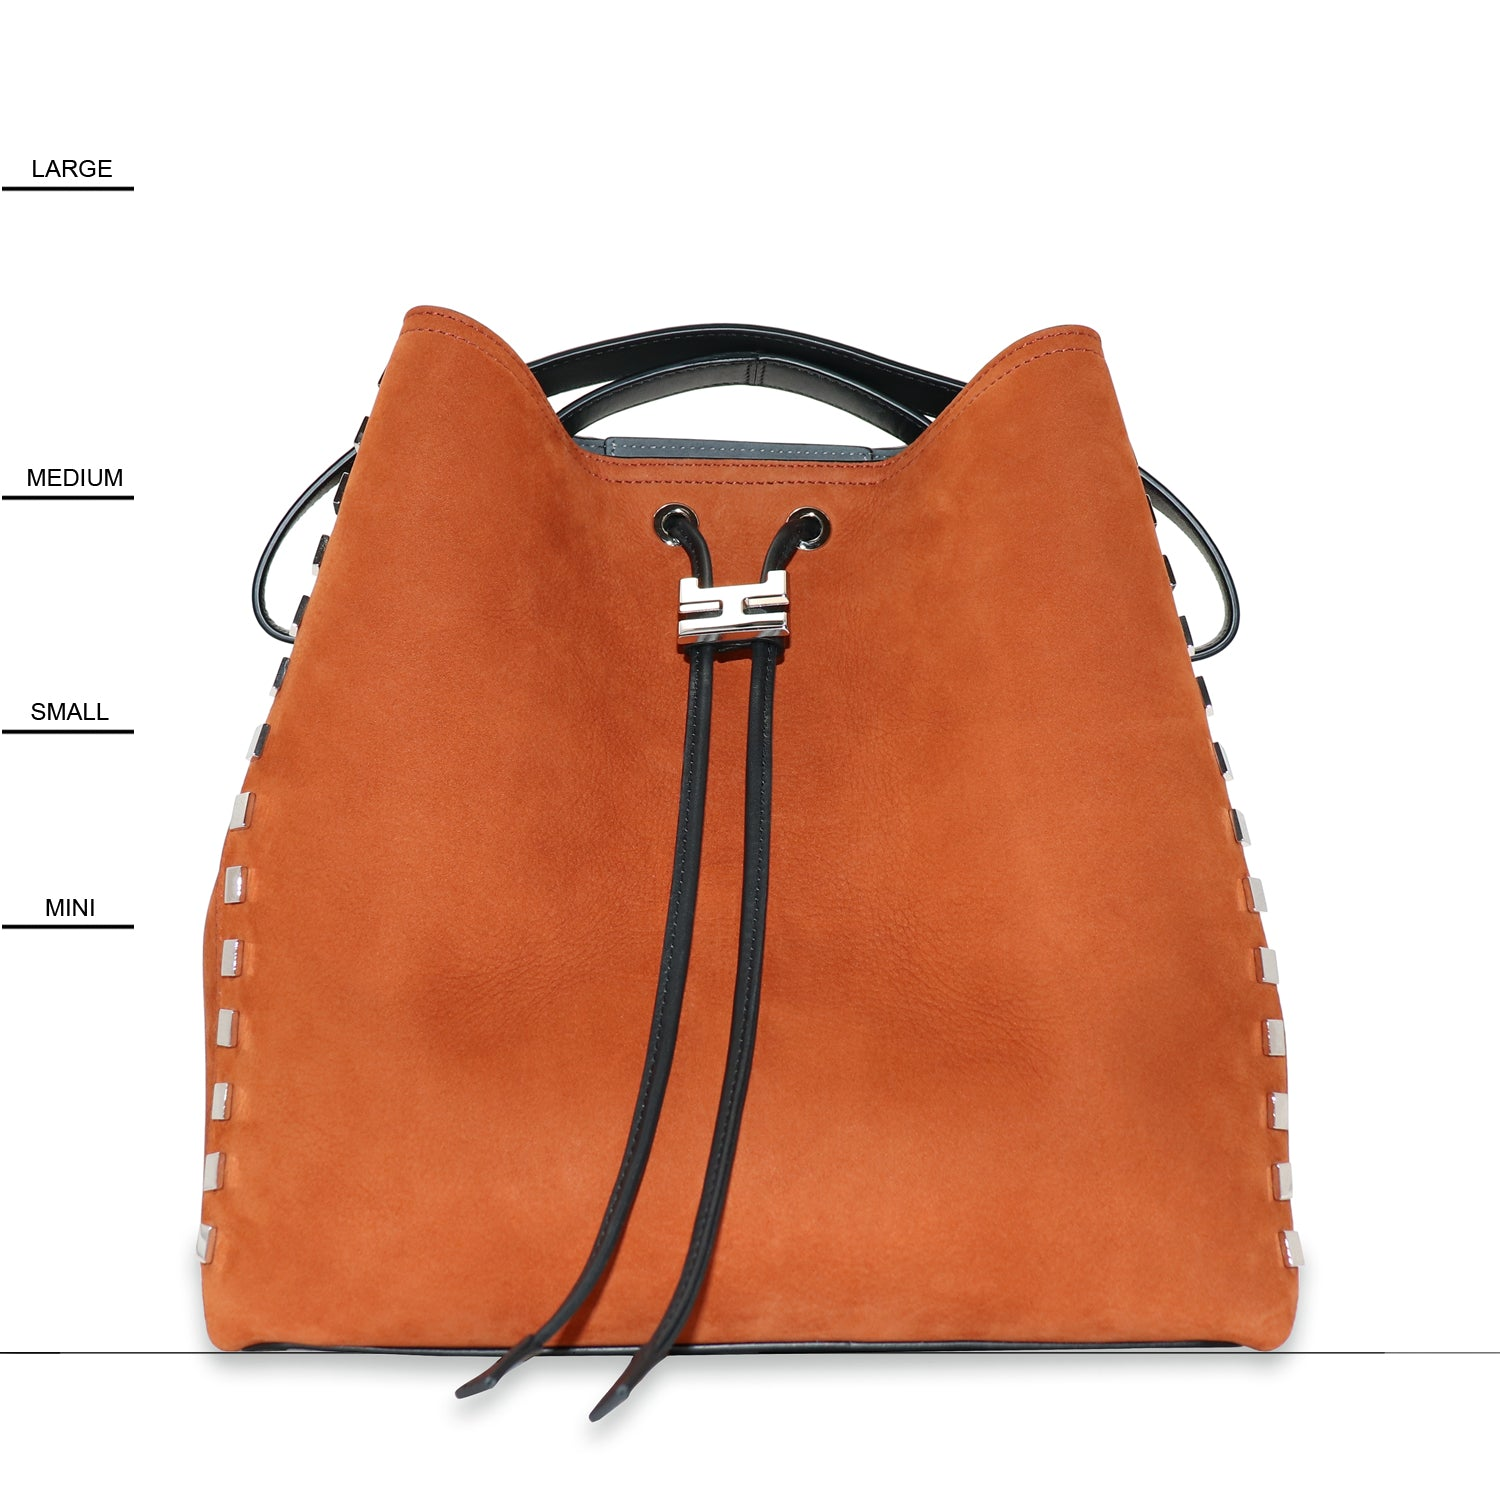 RINIE RUST NUBUCK LEATHER BUCKET BAG